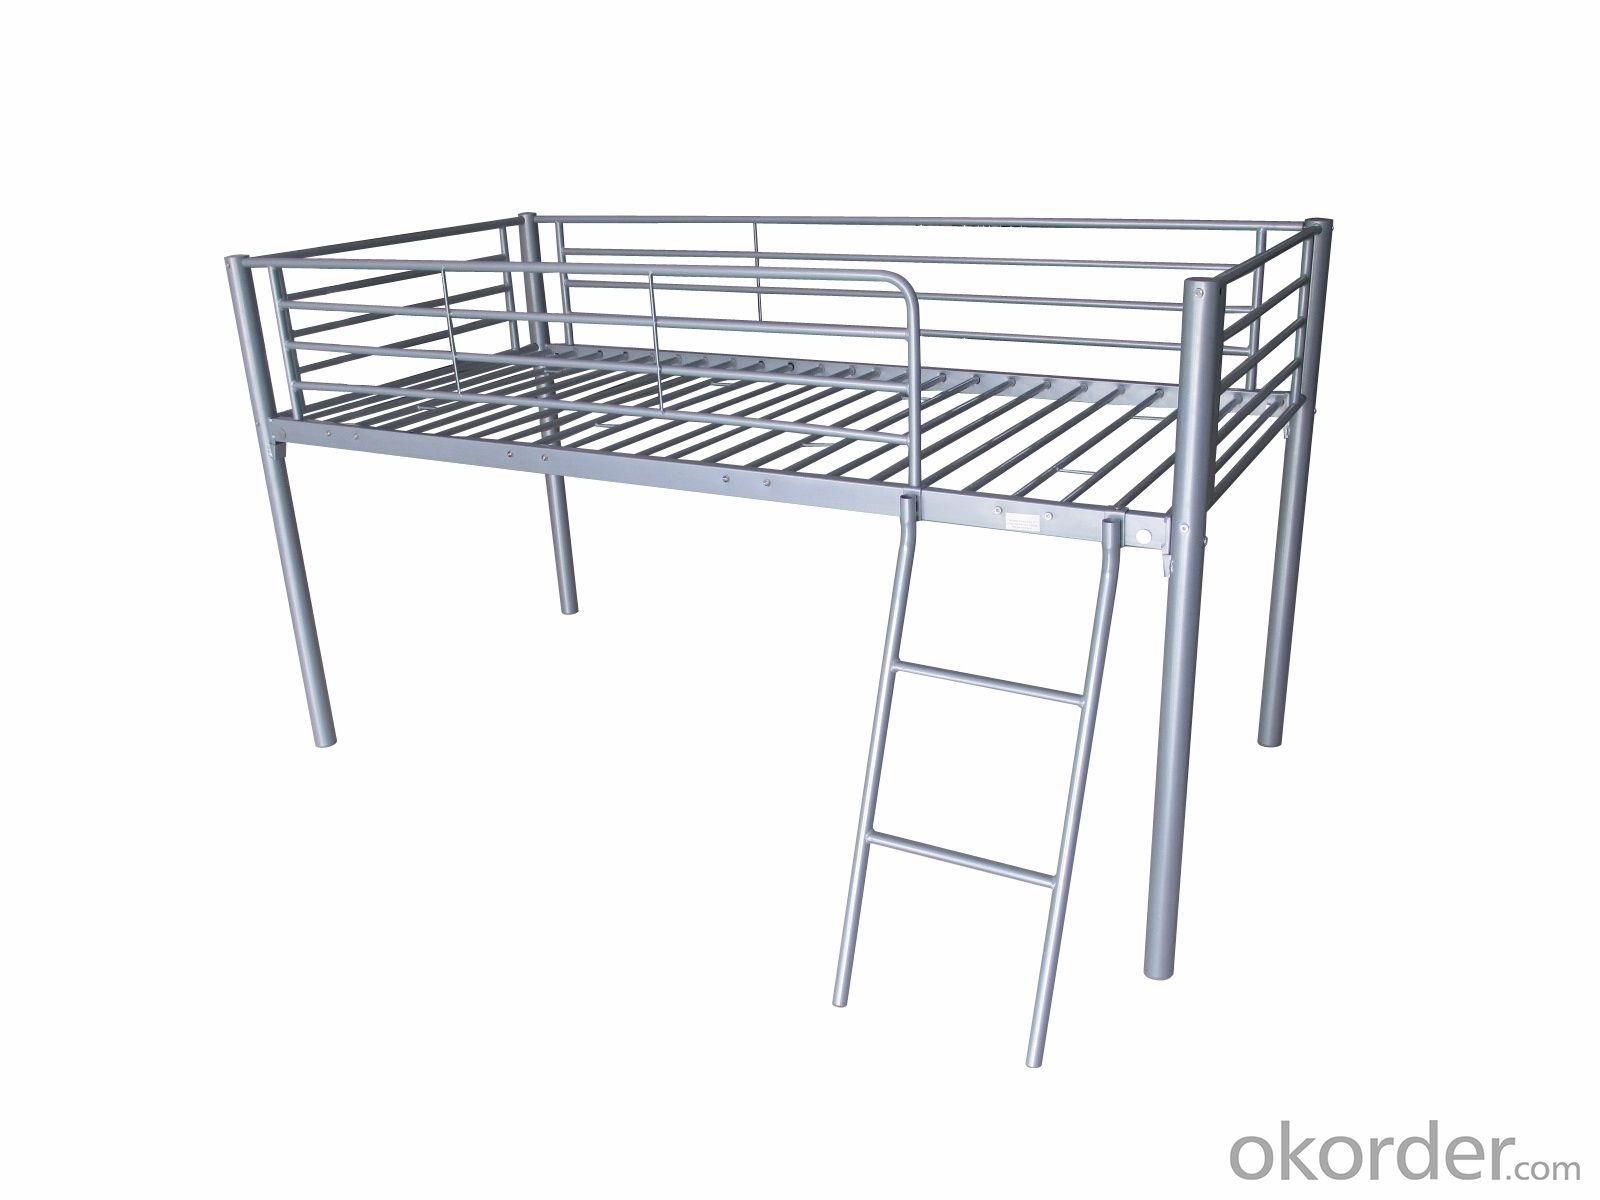 Hot Sale Metal Bunk Beds/Metal Beds Frame/Dormitory Bed MB-170